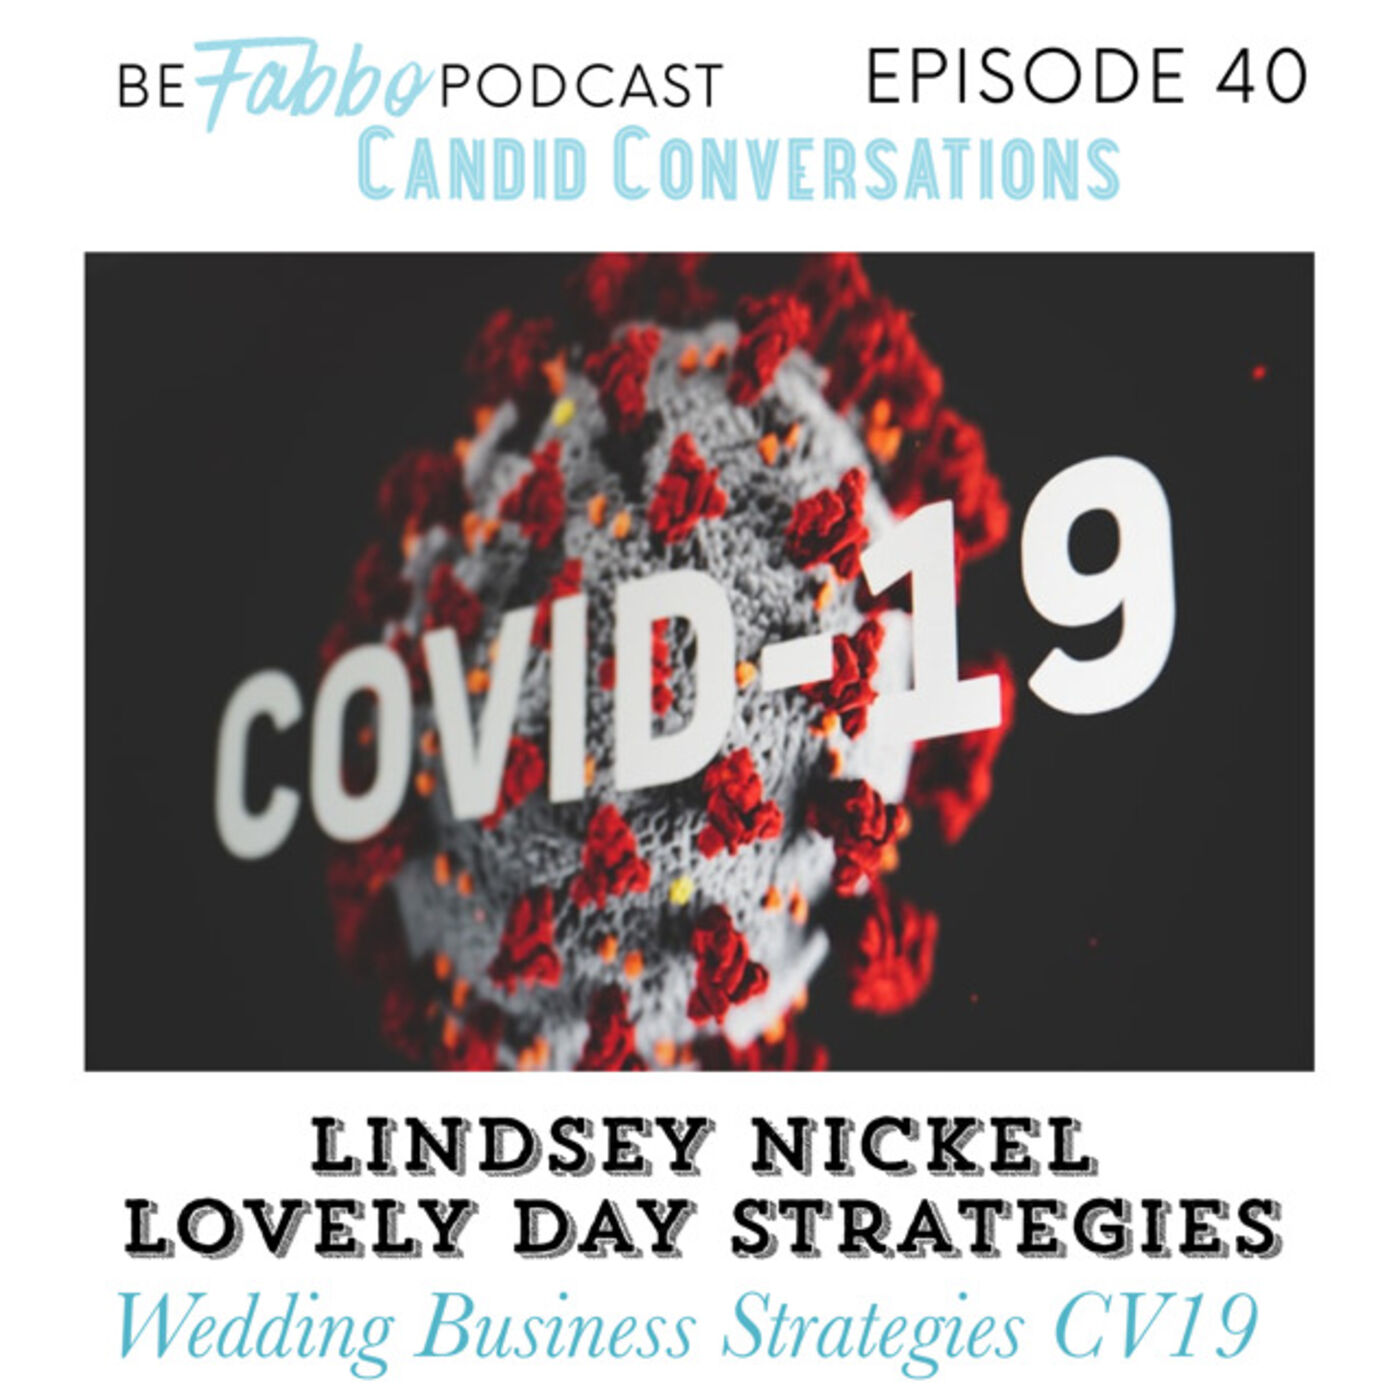 40: Wedding Business Strategies CV 19